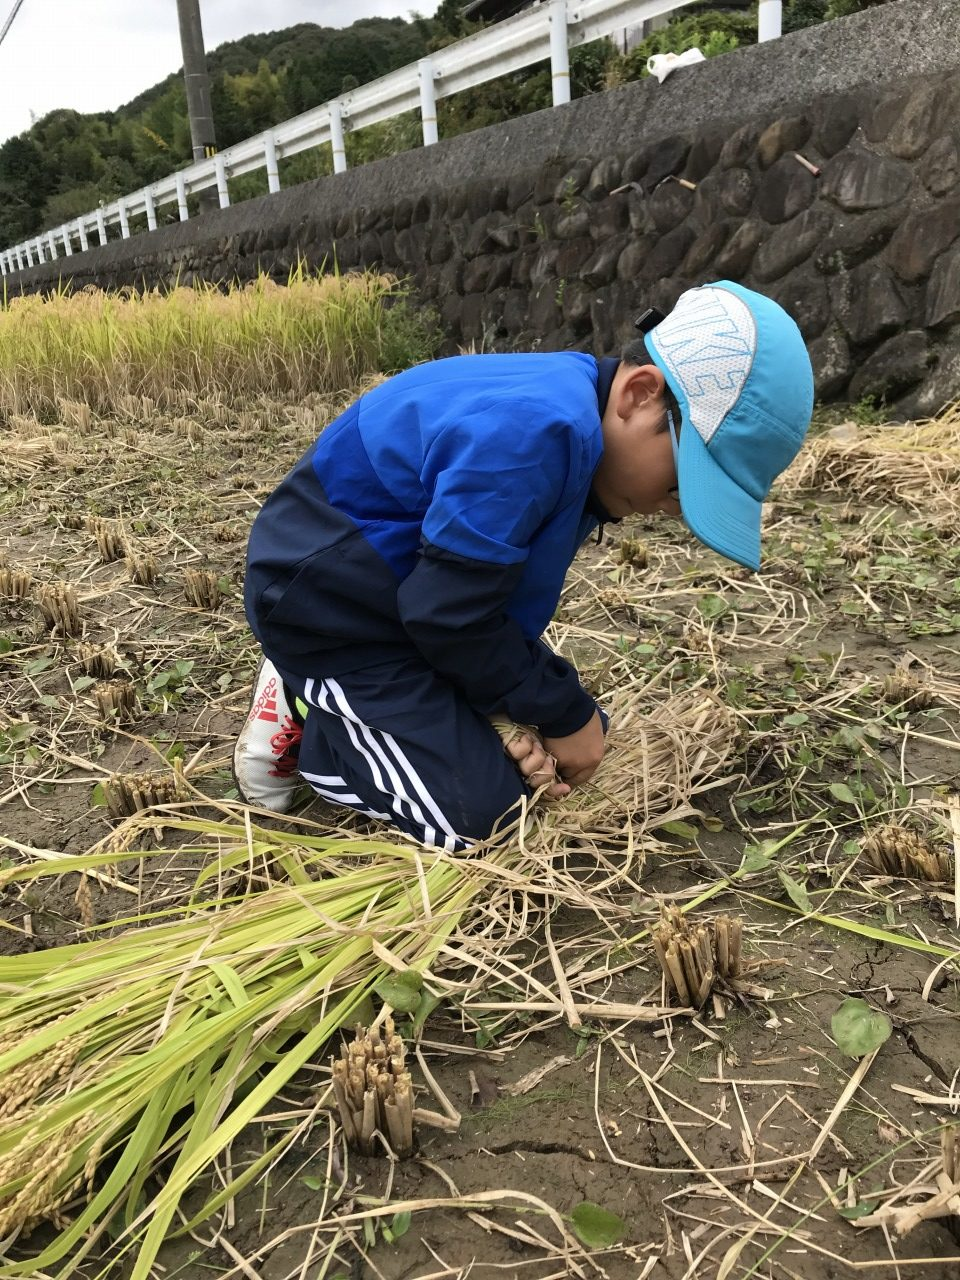 tie up cut rice plants in sheaves